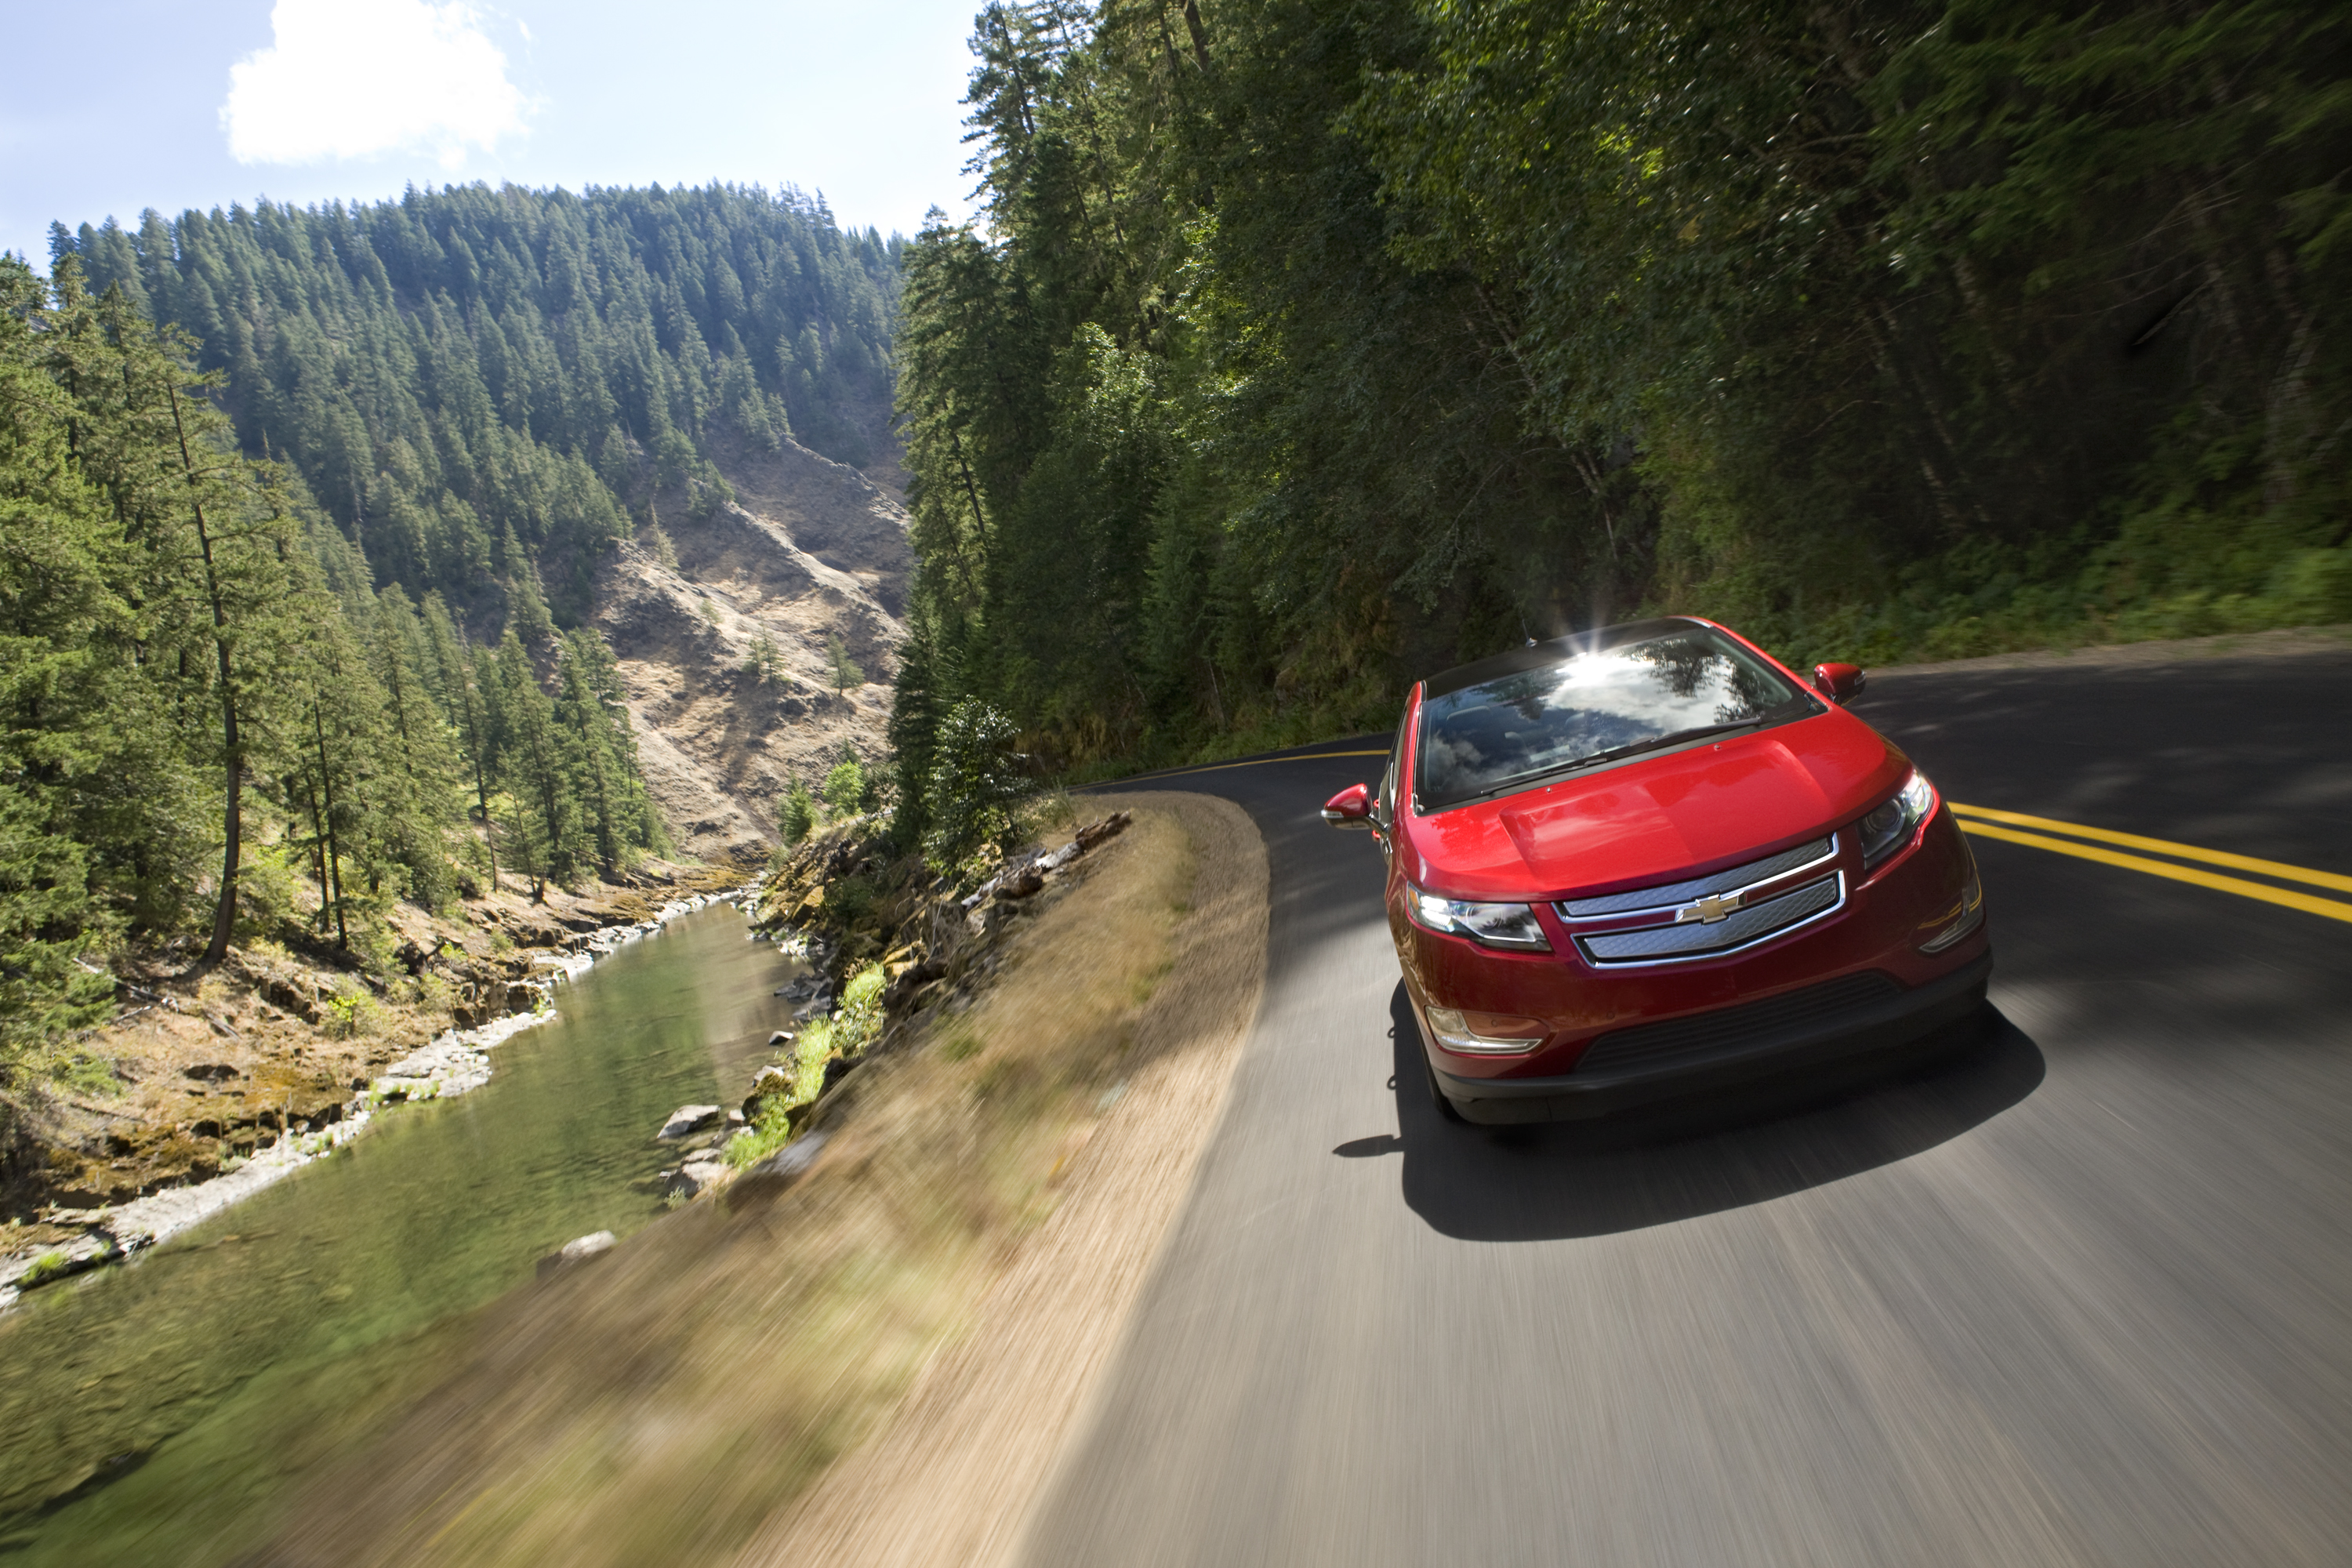 Chevy Dealers In Vt >> Economical Chevrolets led April sales as the Volt waits in the wings - GM-VOLT : Chevy Volt ...